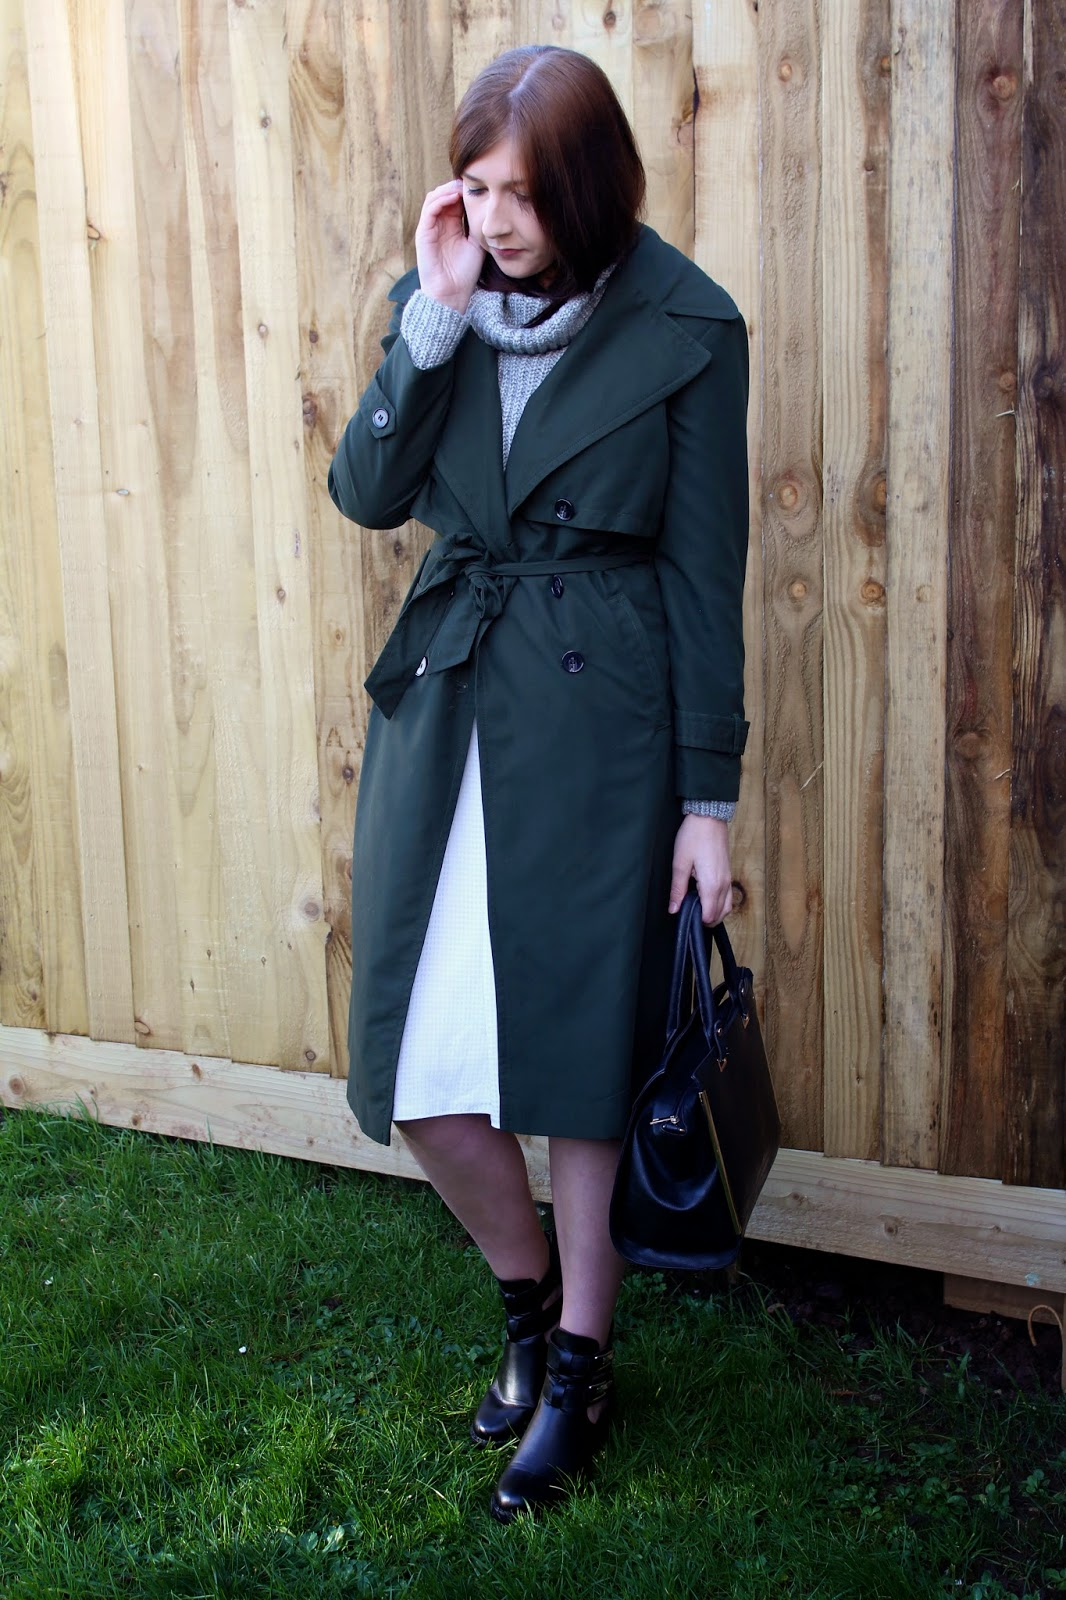 asseenonme, wiw, whatimwearing, primark, newlook, shoezone, ootd, outfitoftheday, ootd, lookoftheday, lotd, trenchcoat, fbloggers, fblogger, fashion, fashionbloggers, fashionblogger, whiteskirt, winterfashion, rollneckjumper